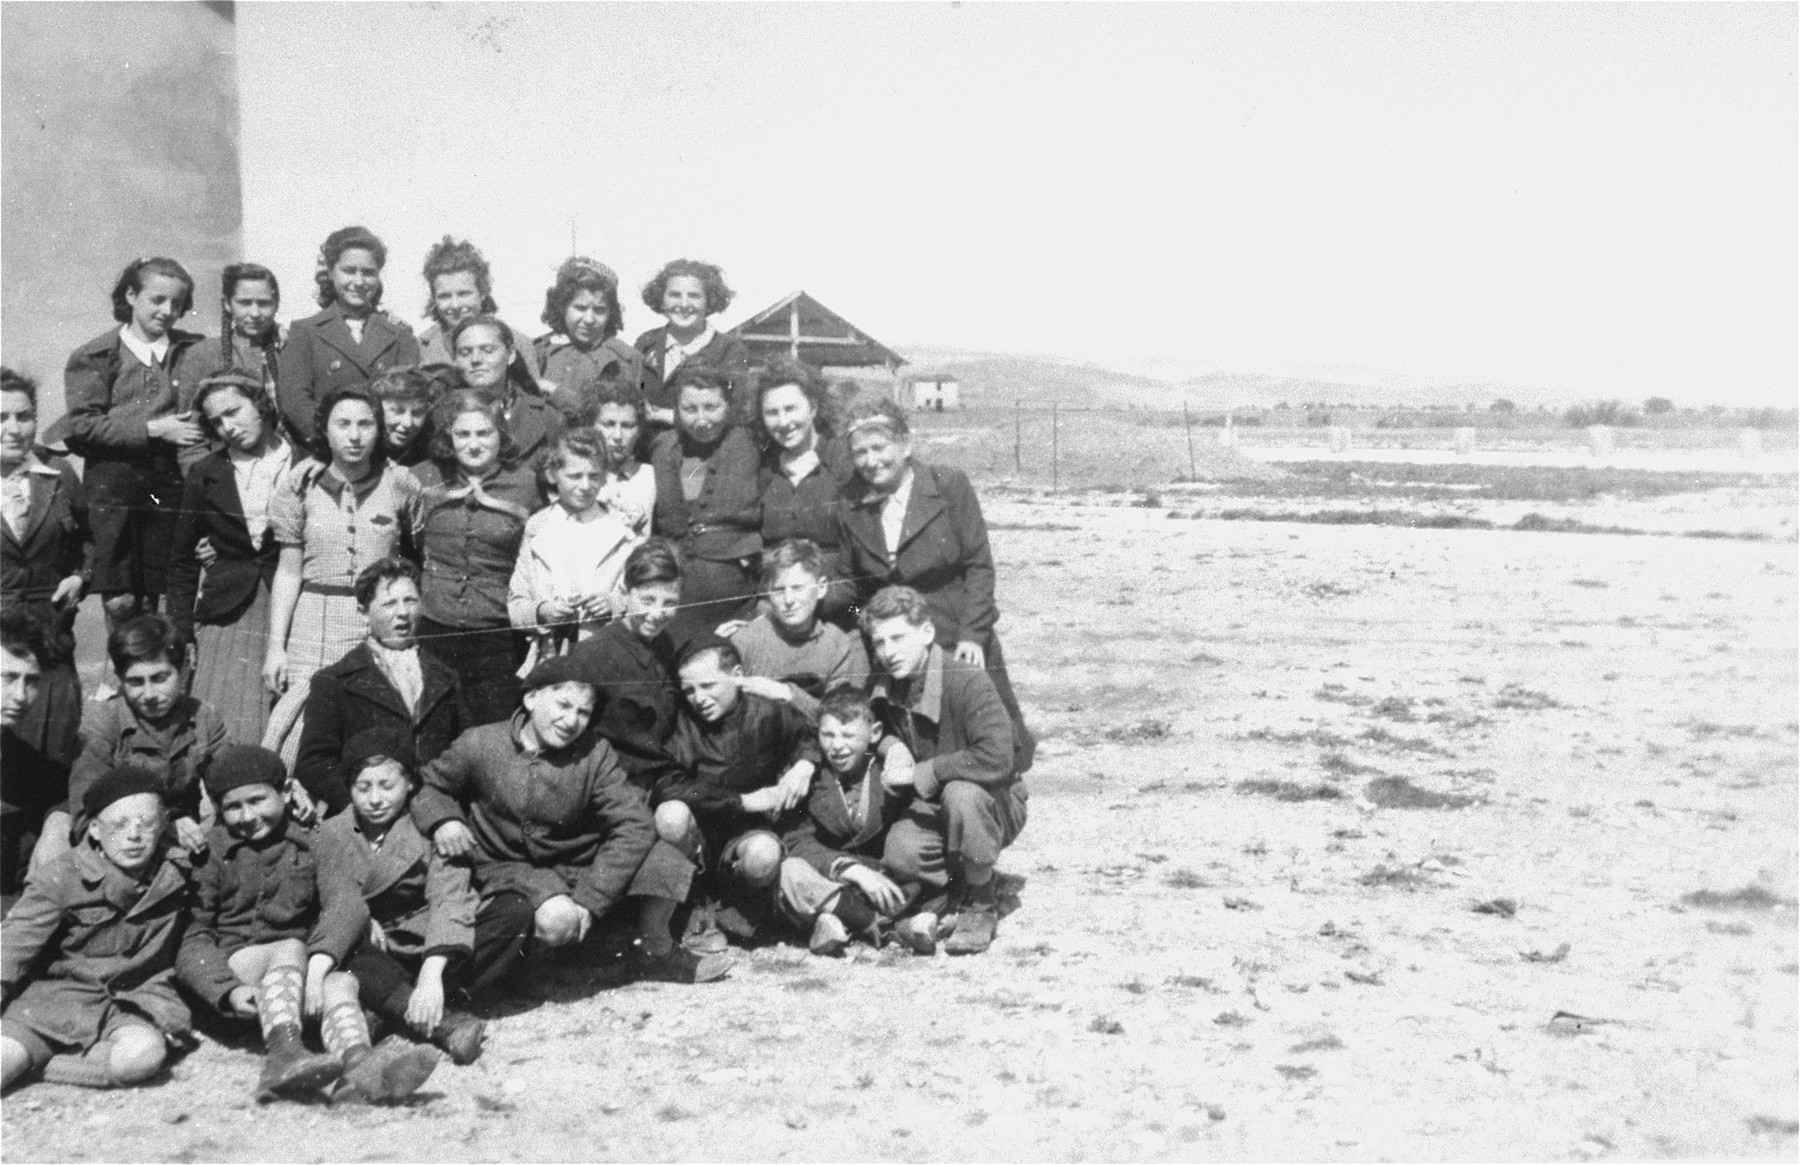 Group portrait of members of a scouting troop organized by Simone Weil in the Rivesaltes transit camp.